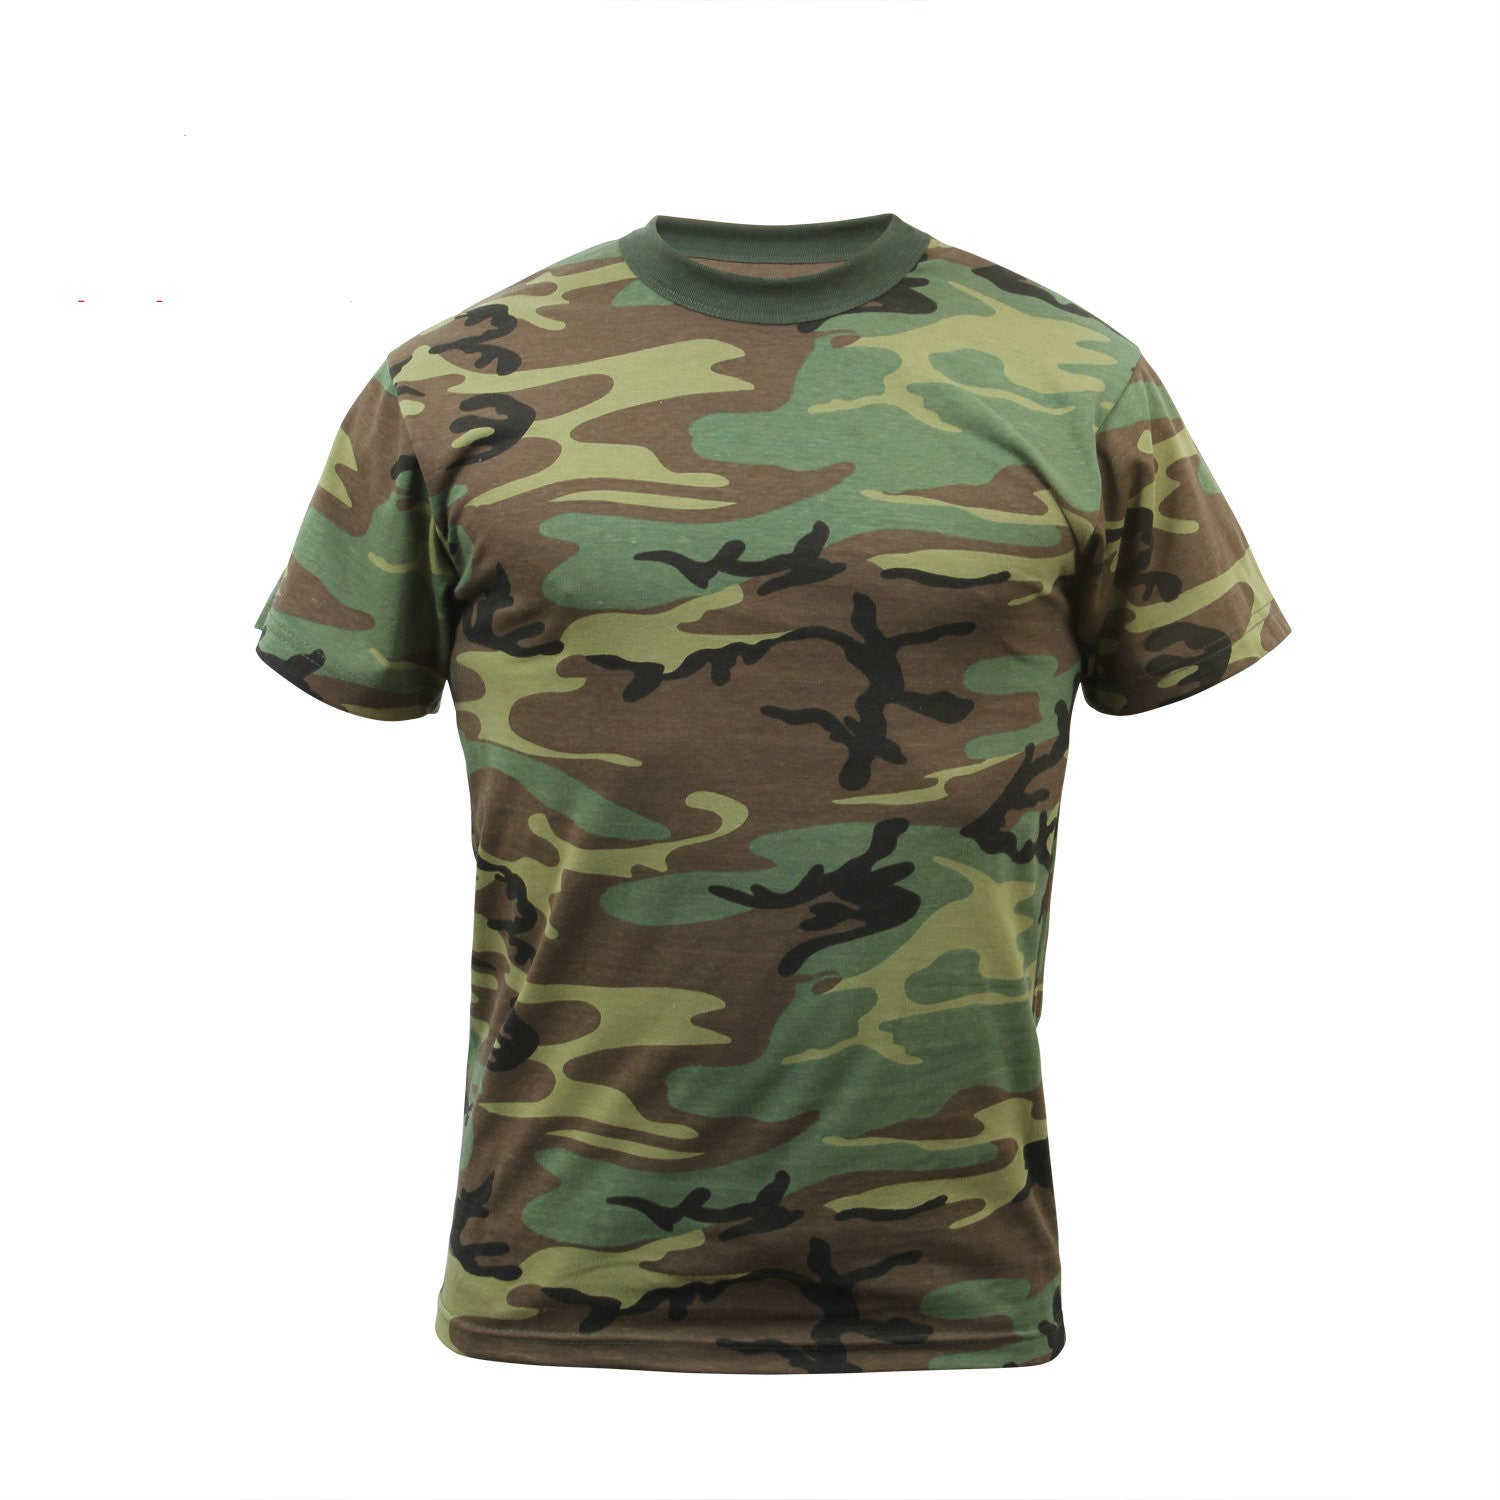 Kid's Woodland Camouflage T-Shirt